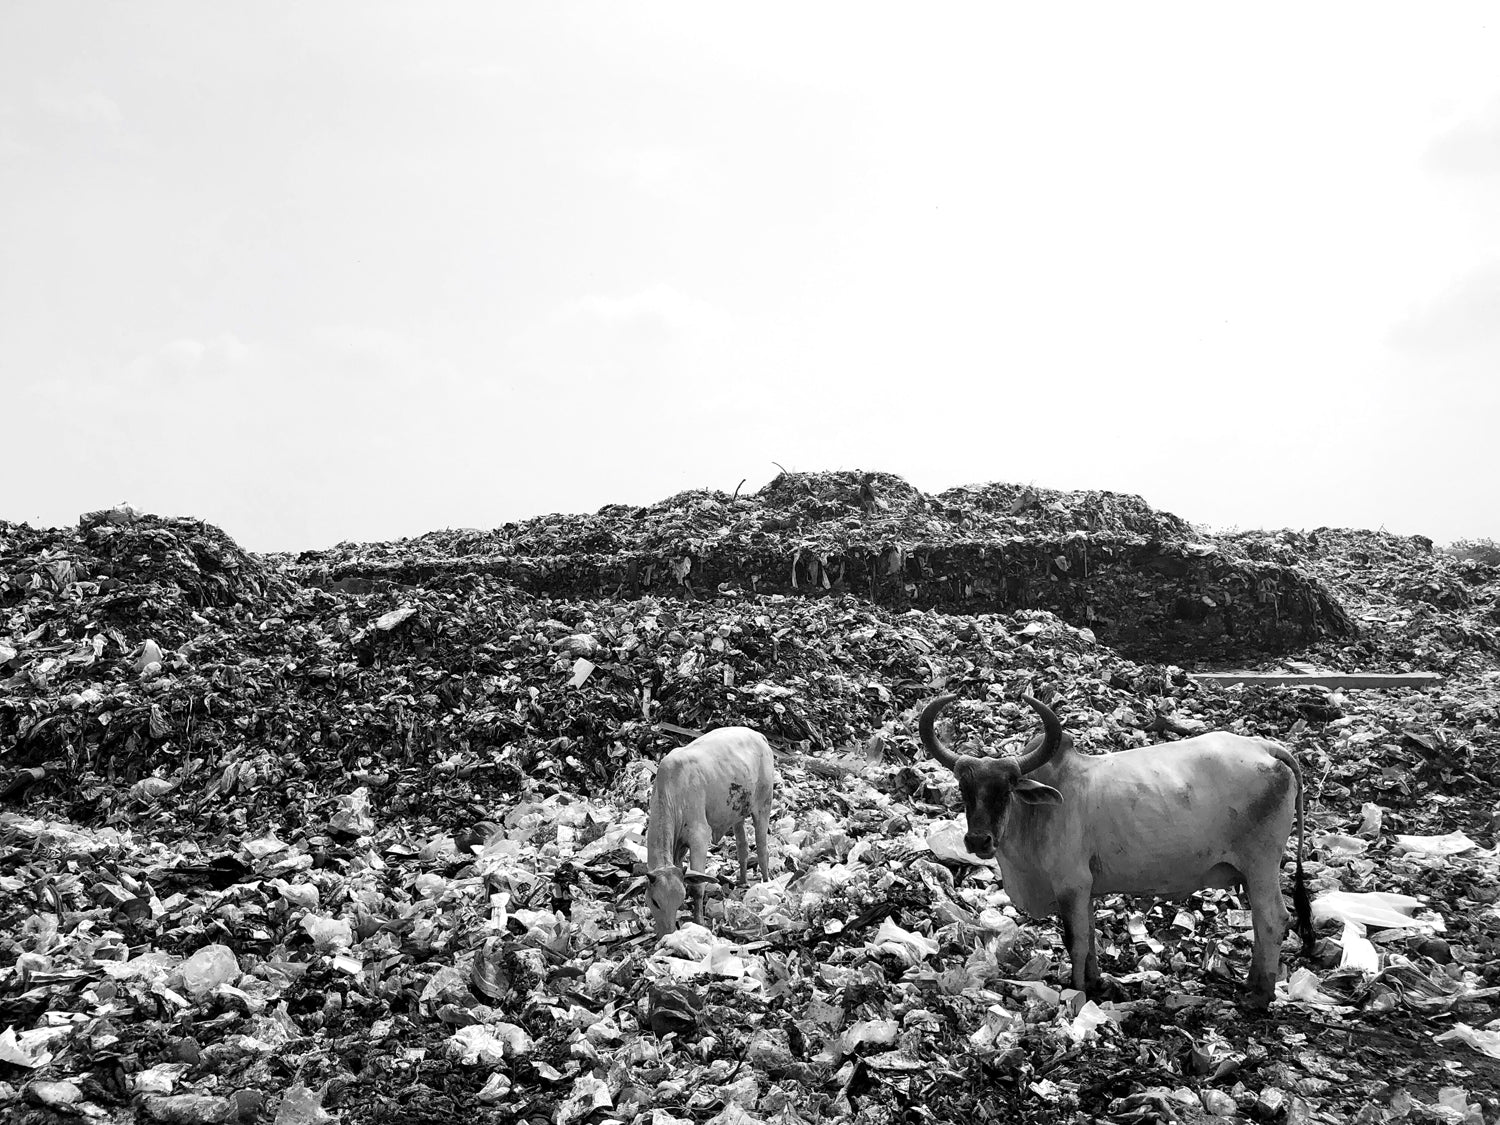 Landfill with mountains of waste and livestock scavenging for food scraps